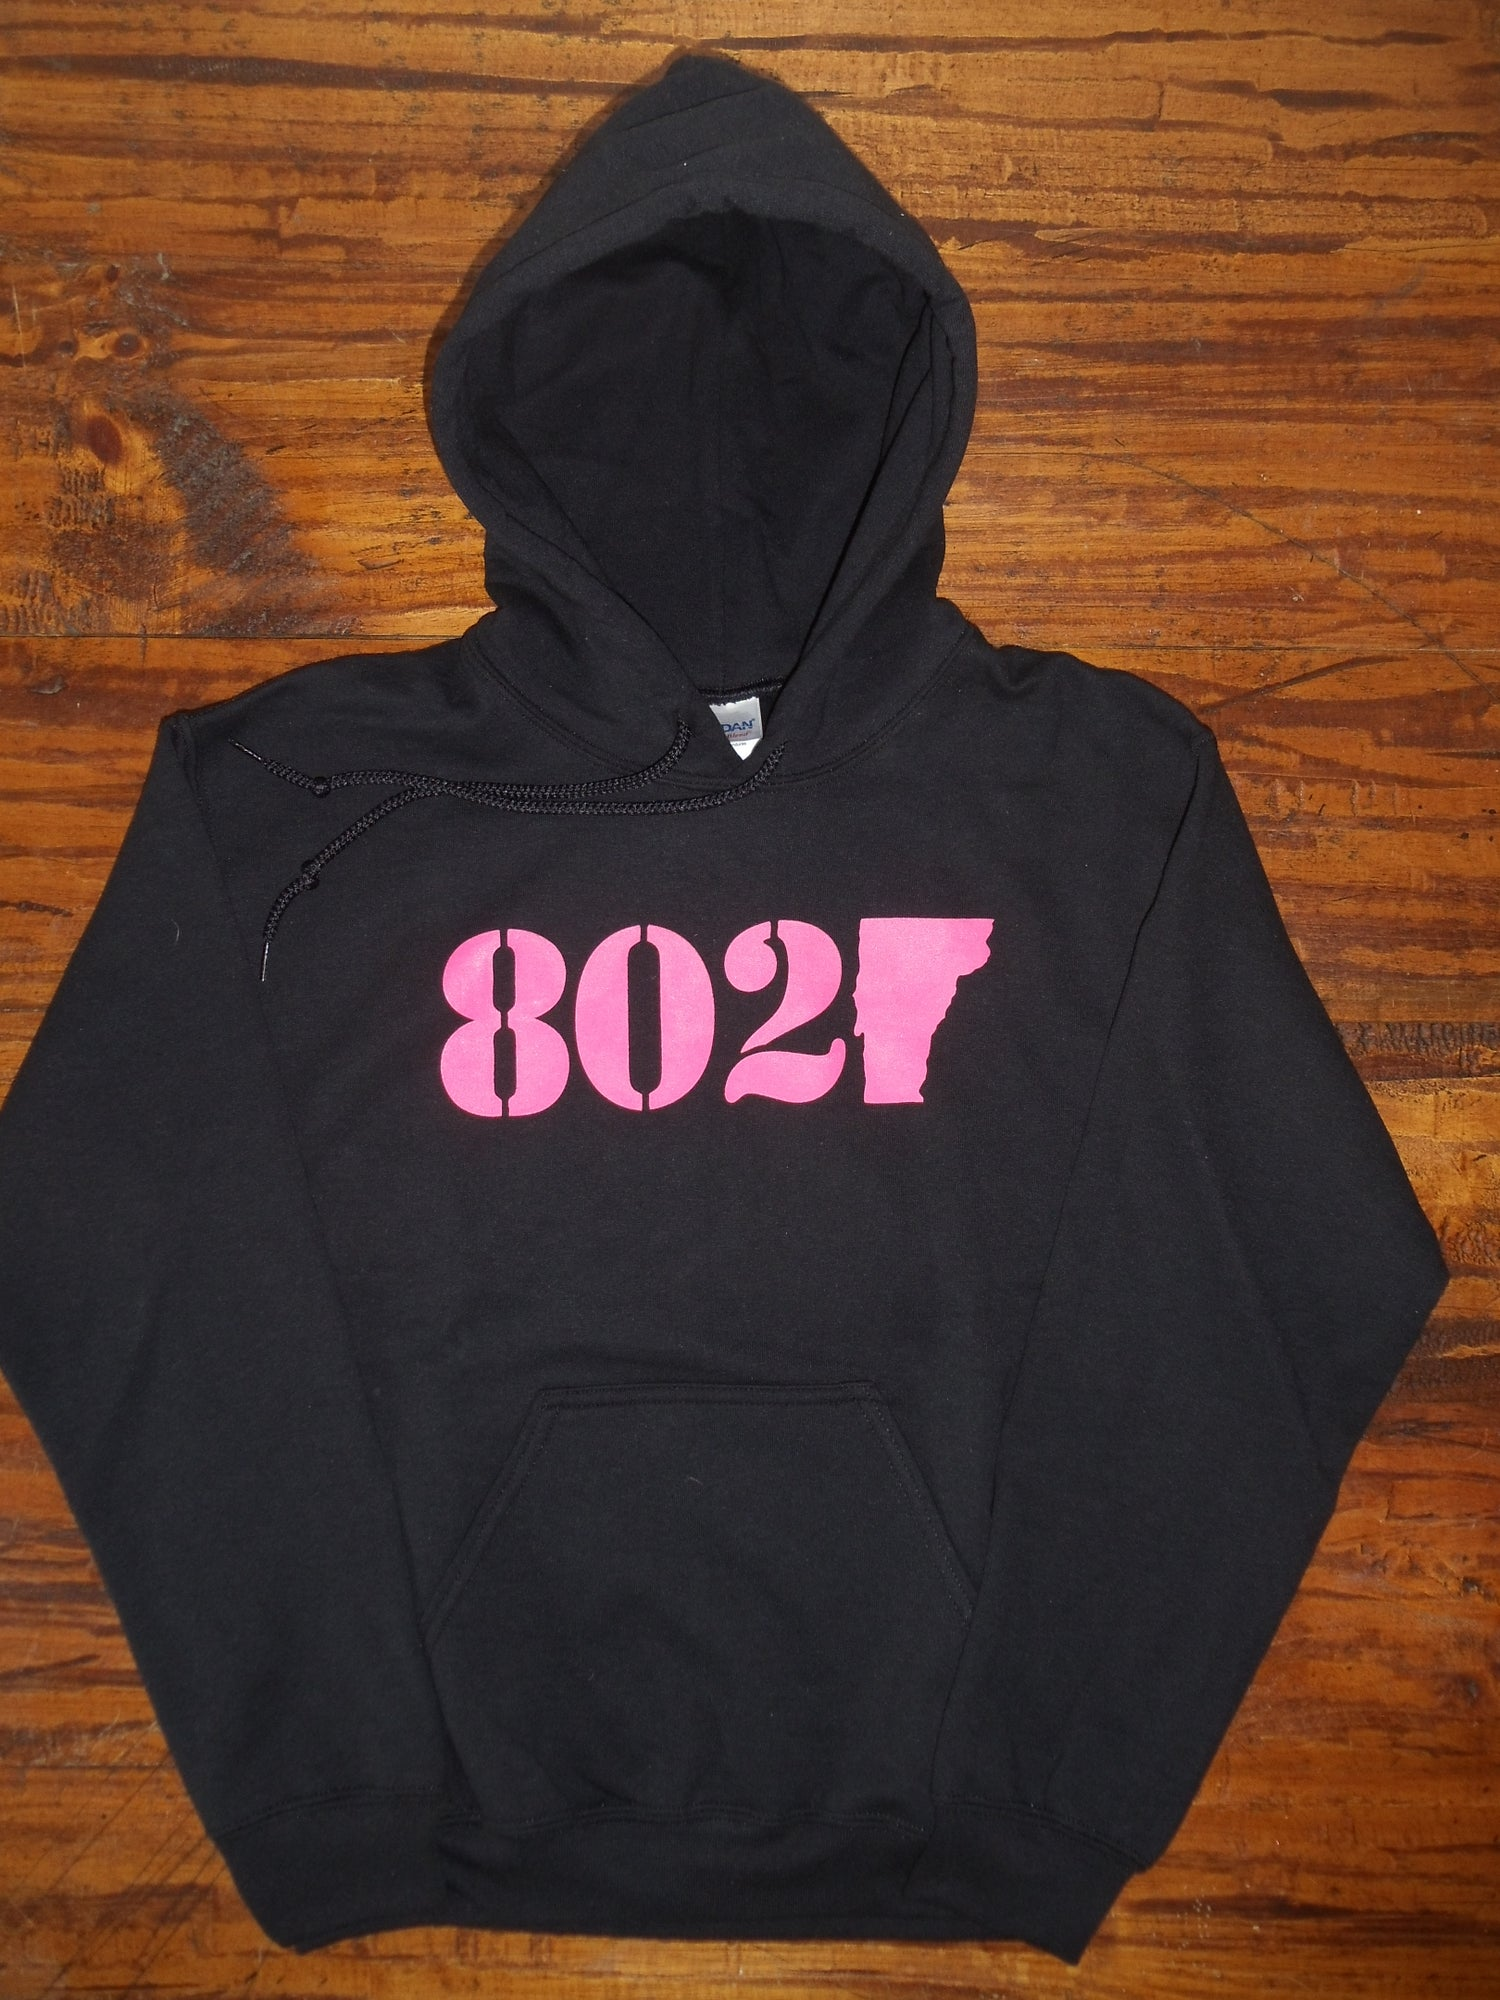 Image of 802 Classic Vermont Hooded Sweatshirt - Neon Pink logo on Black Hoodie